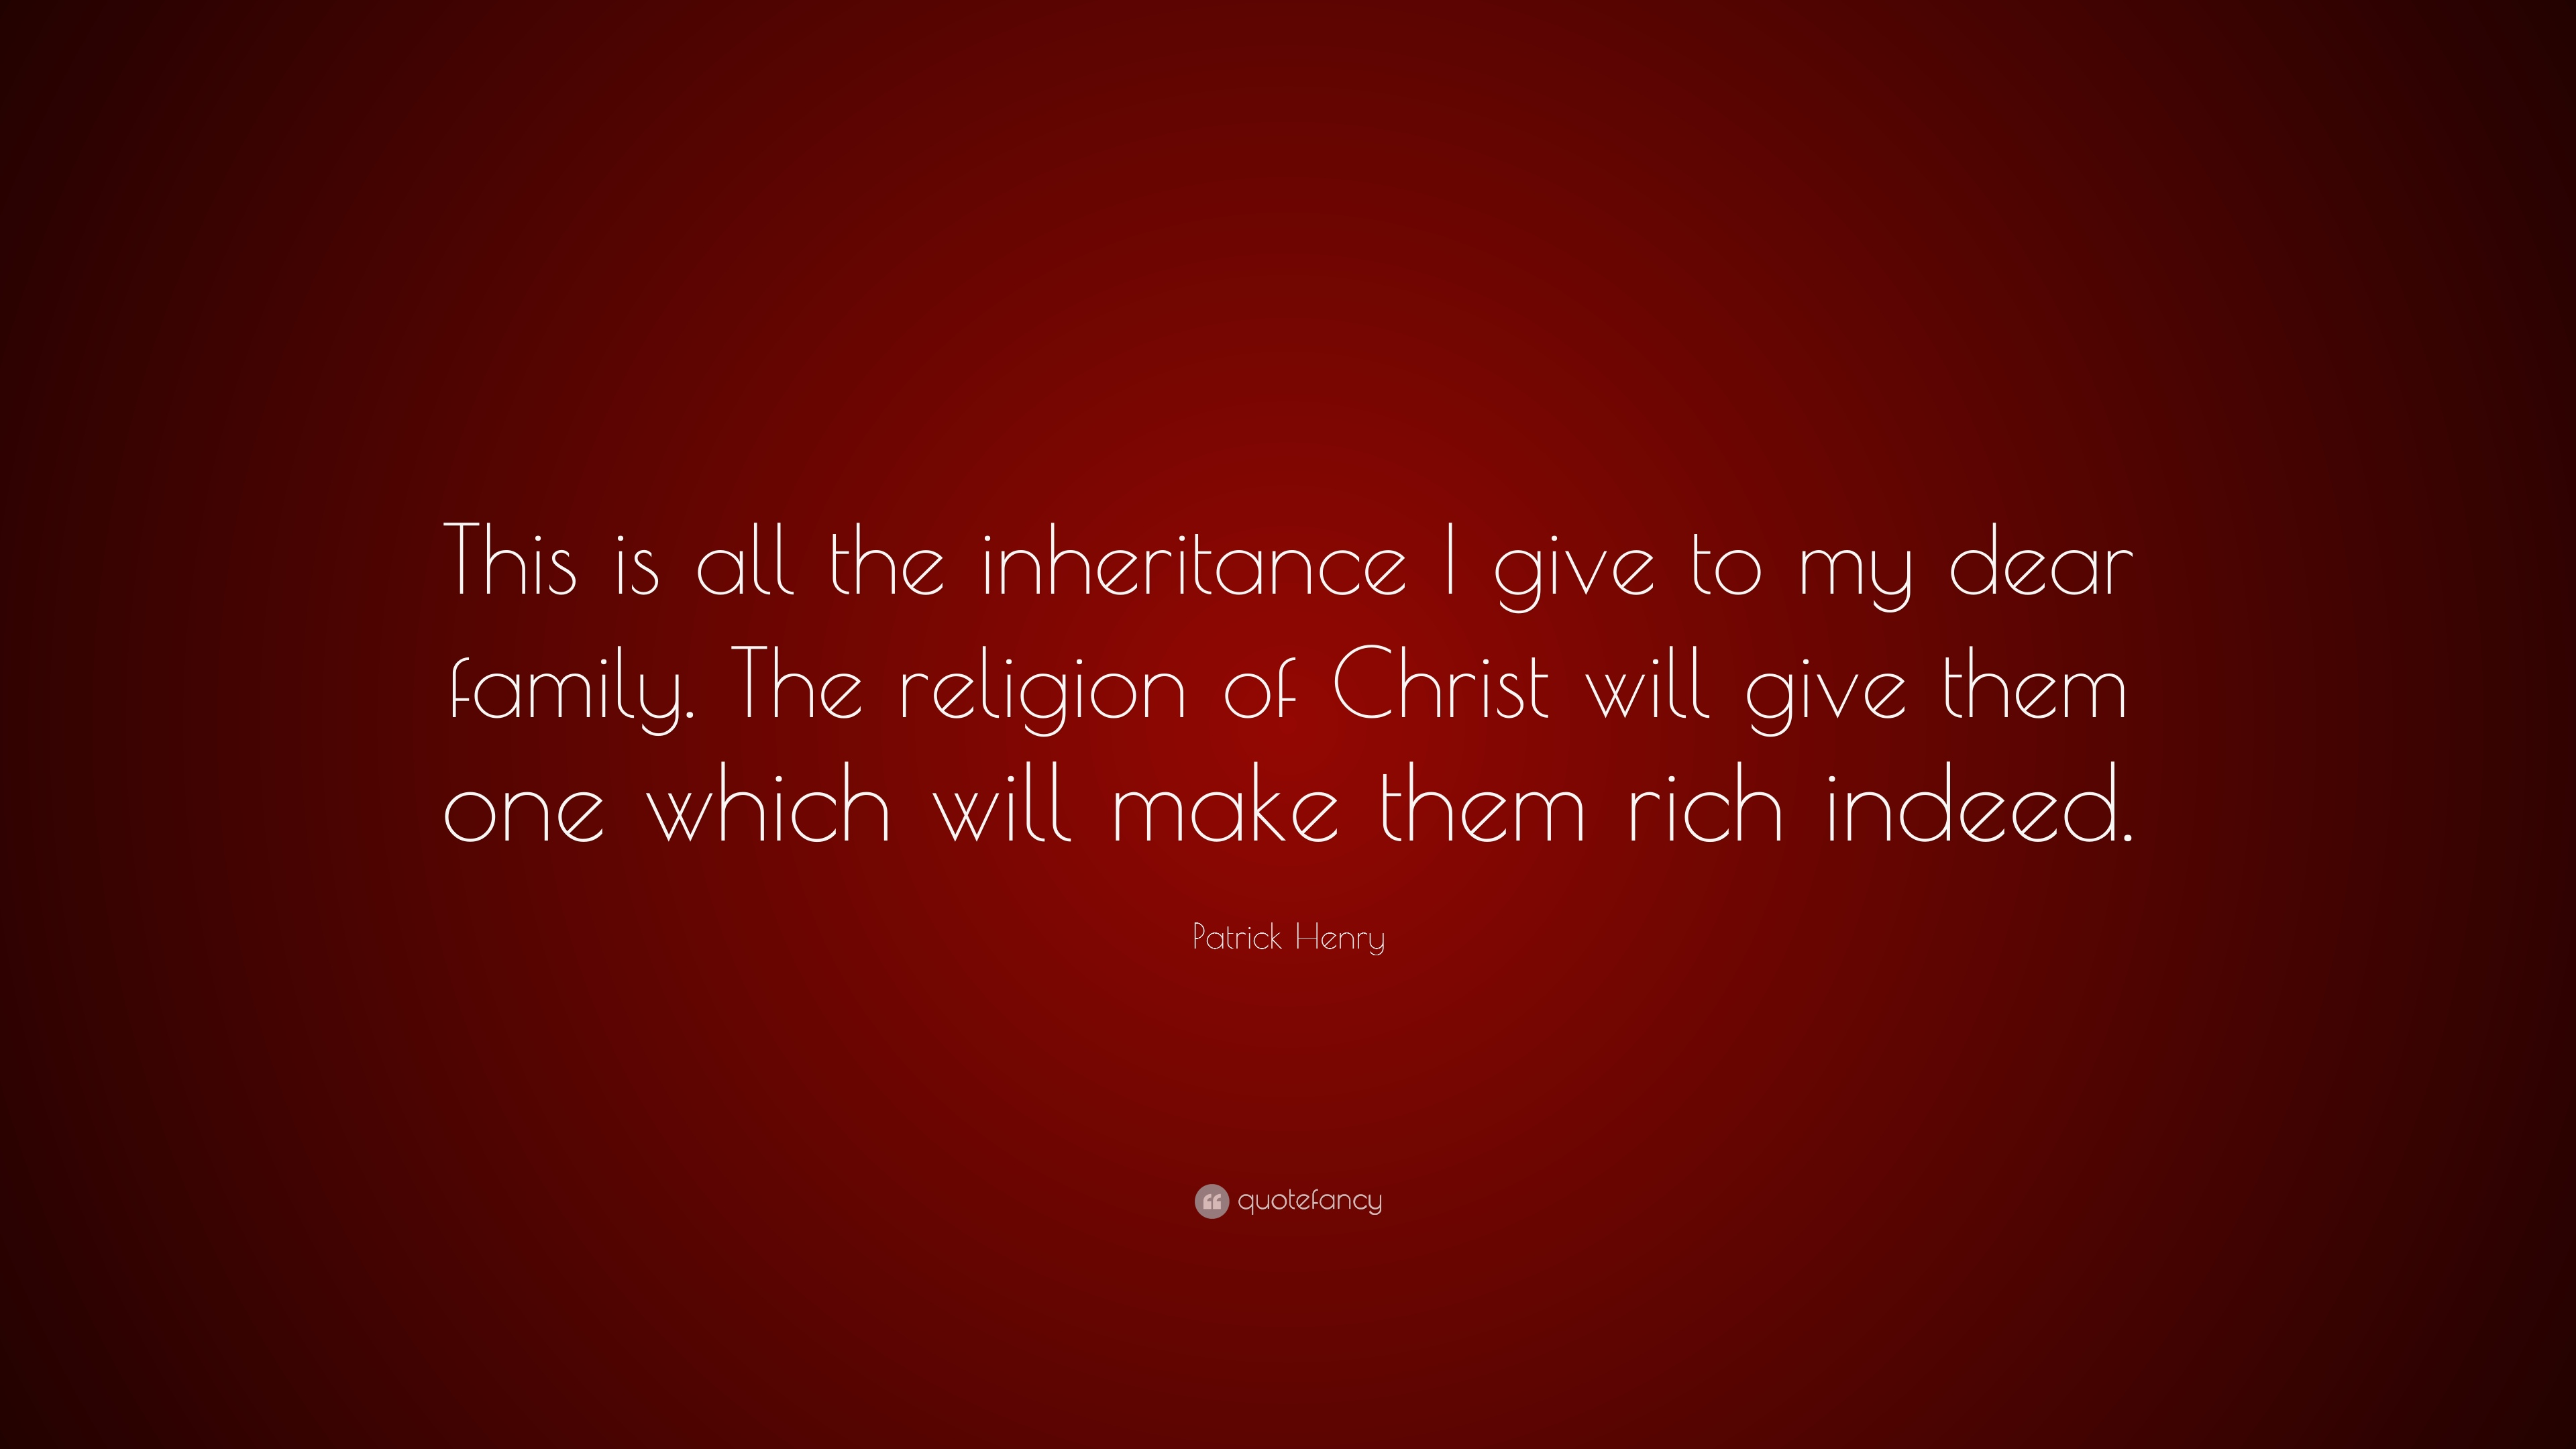 patrick henry quote ldquo this is all the inheritance i give to my patrick henry quote ldquothis is all the inheritance i give to my dear family